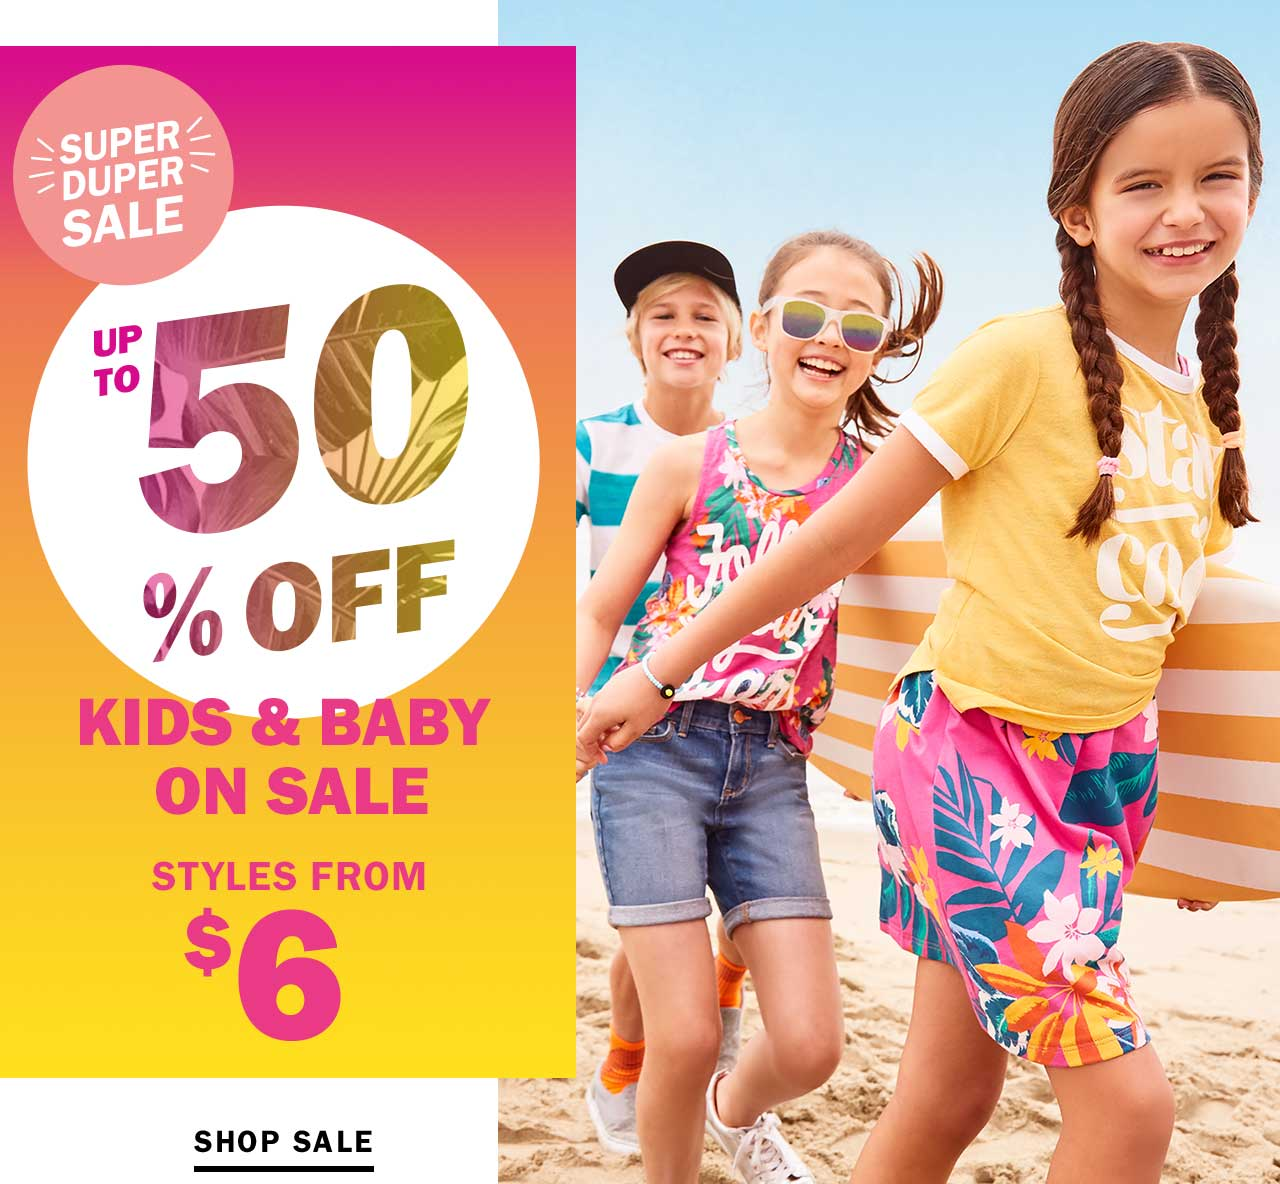 UP TO 50% OFF KIDS & BABY ON SALE | SHOP SALE